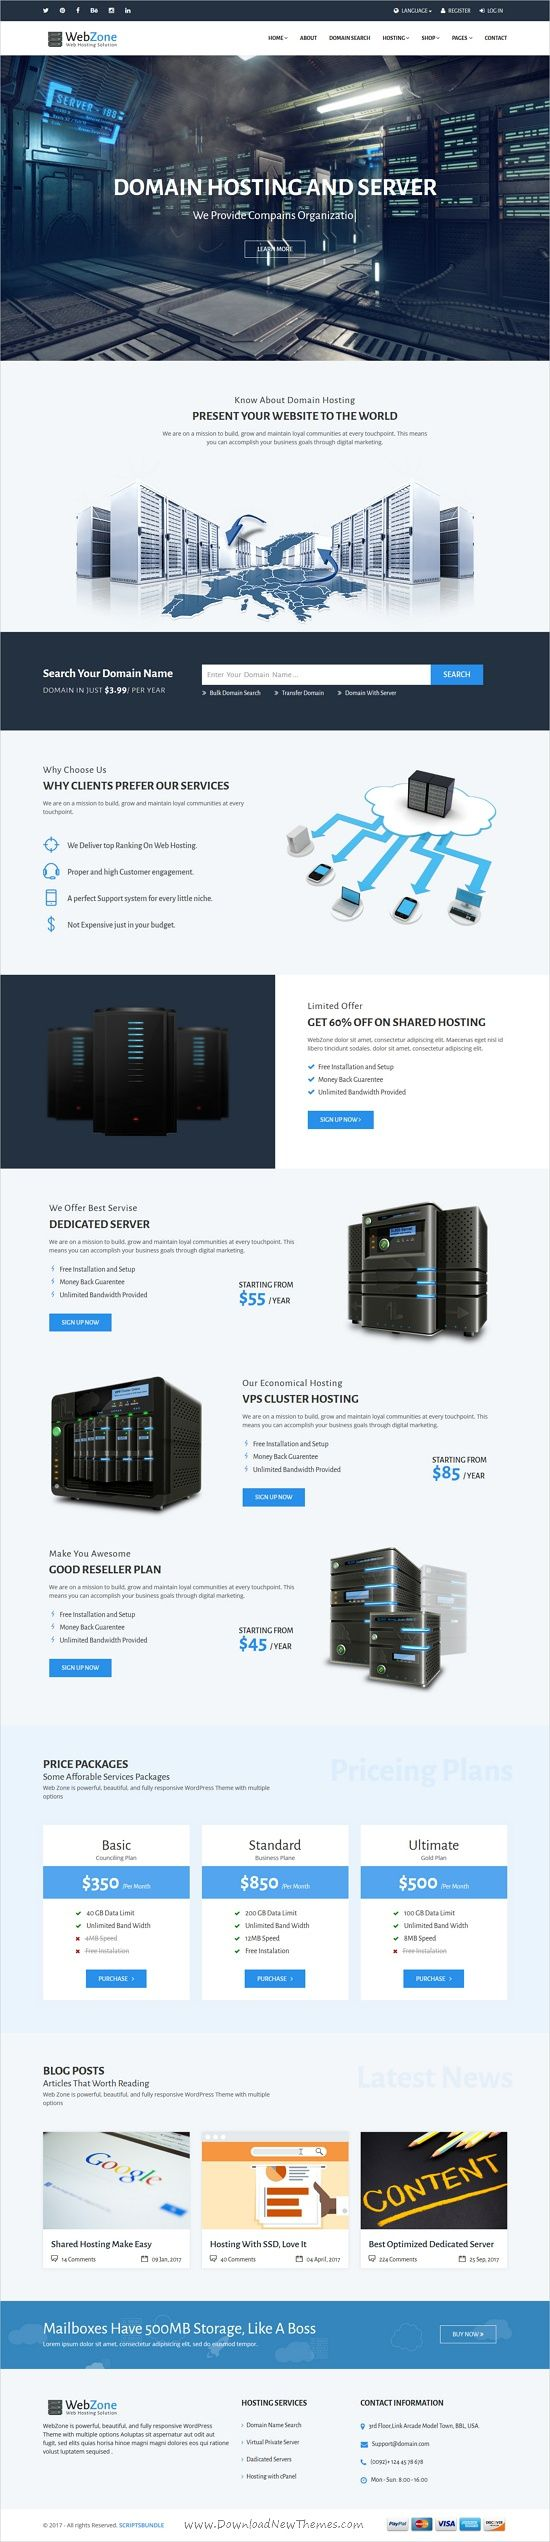 WebZone is a wonderful 3in1 responsive HTML #bootstrap template for #web #hosting, Marketing, software businesses companies websites download now➩ https://themeforest.net/item/webzone-exquisite-hosting-and-marketing-template/19320022?ref=Datasata